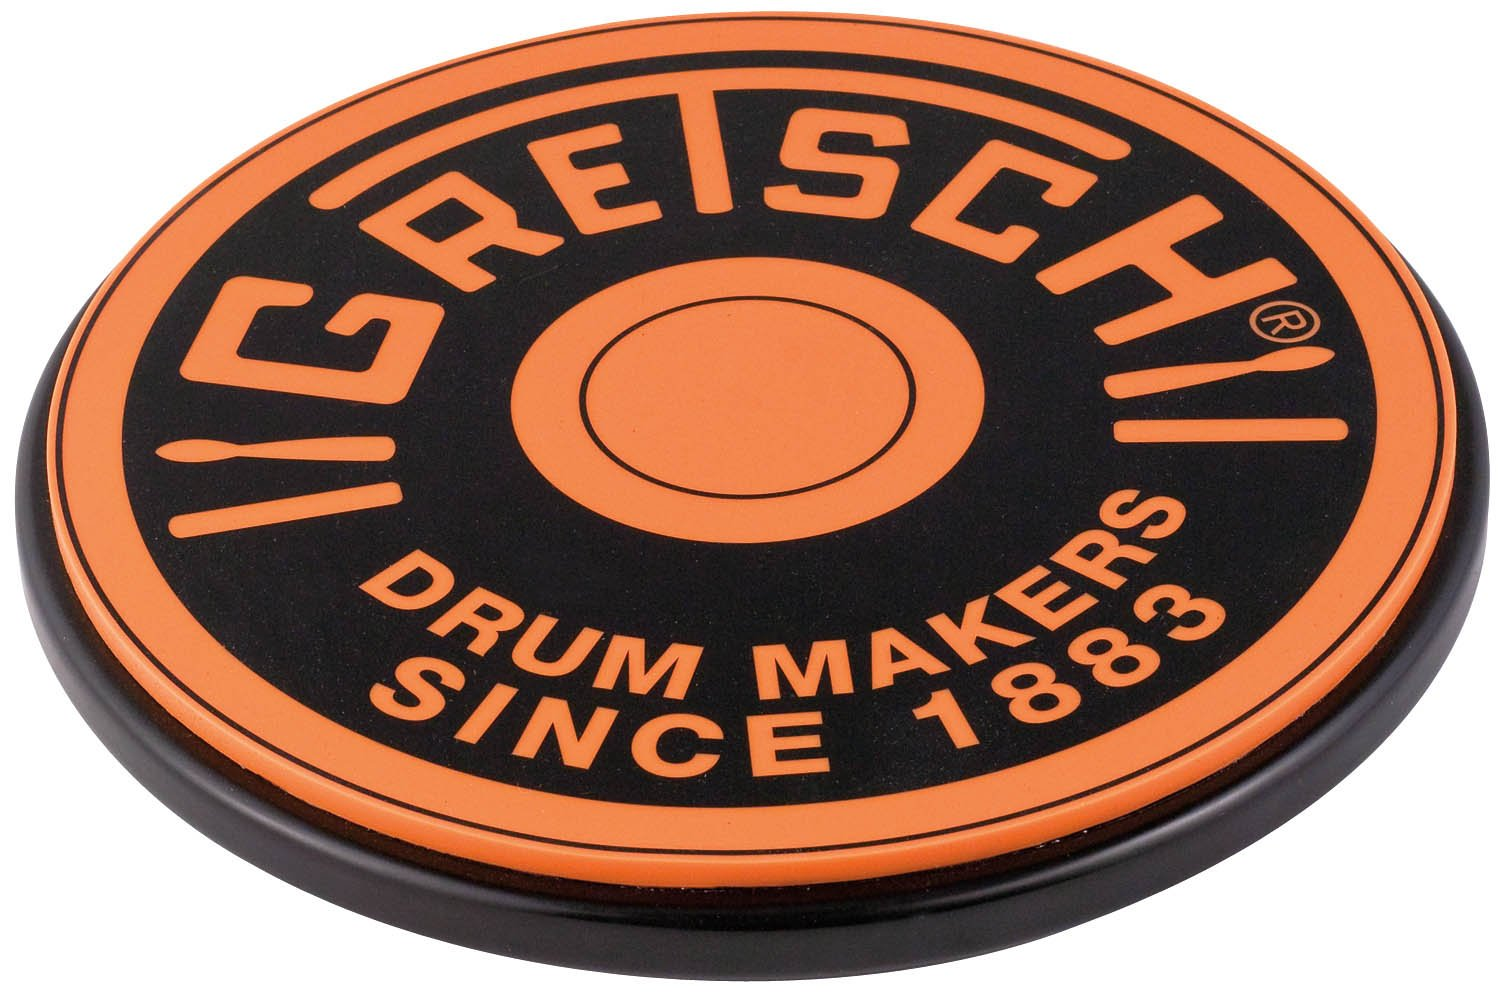 Gretsch Drums Practice Pad (GREPAD12O) Hal Leonard Music Accessories